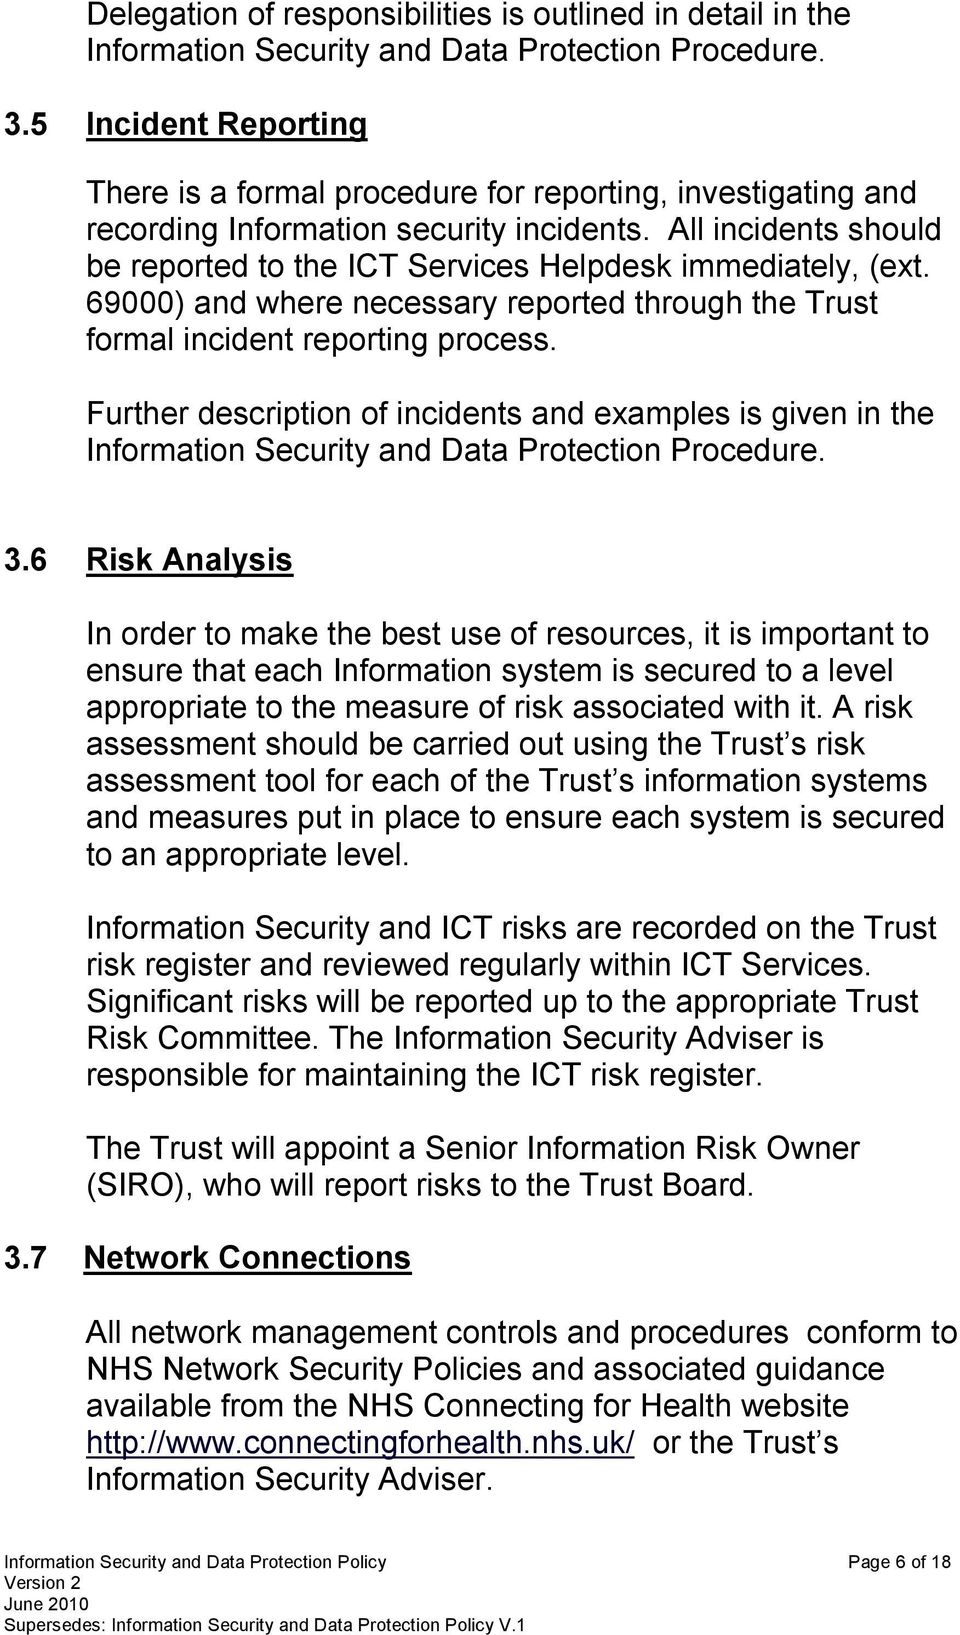 Data Security Policy Example Information Protection Documentation Control And Page 6 Of 18 All Incidents Should Be Reported To The Ict Services Helpdesk Immediately Ext 69000